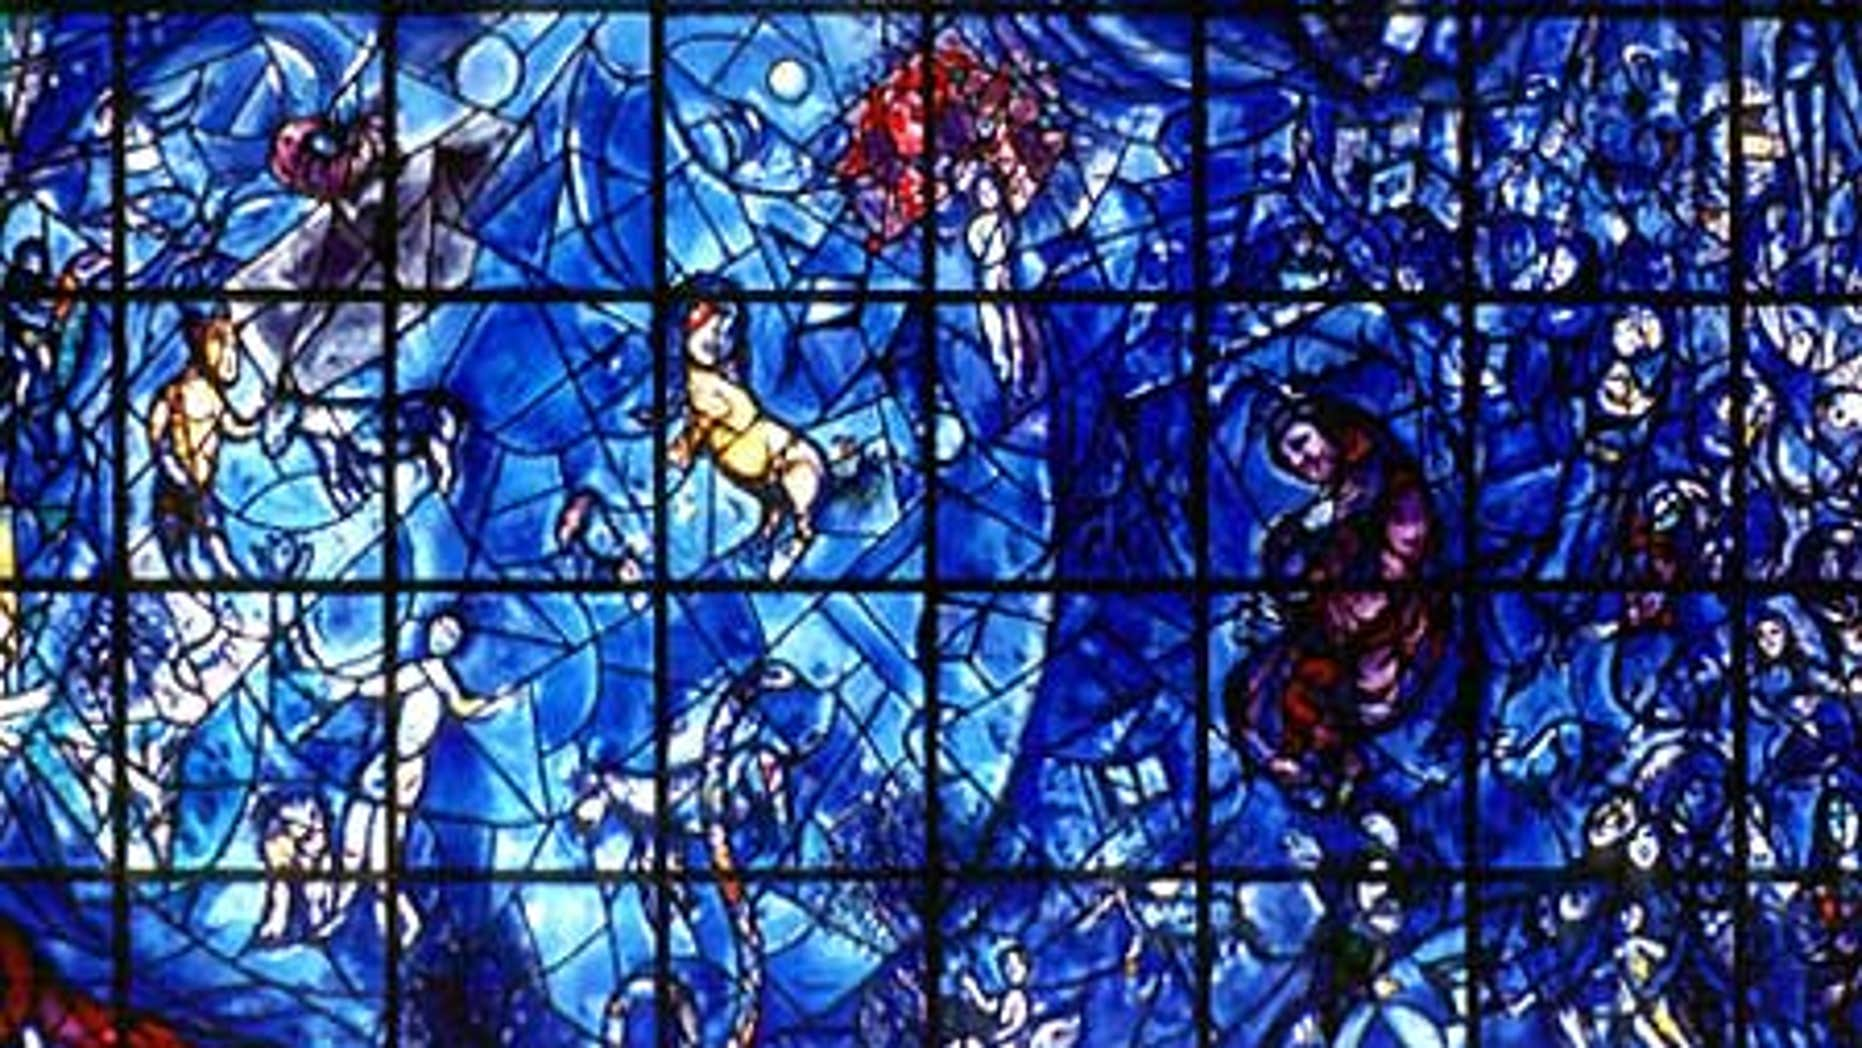 The U.N. displays more than 240 works of art, including this stained glass window by Marc Chagall. An internal audit showed that a number of artworks have been lost by the world body.